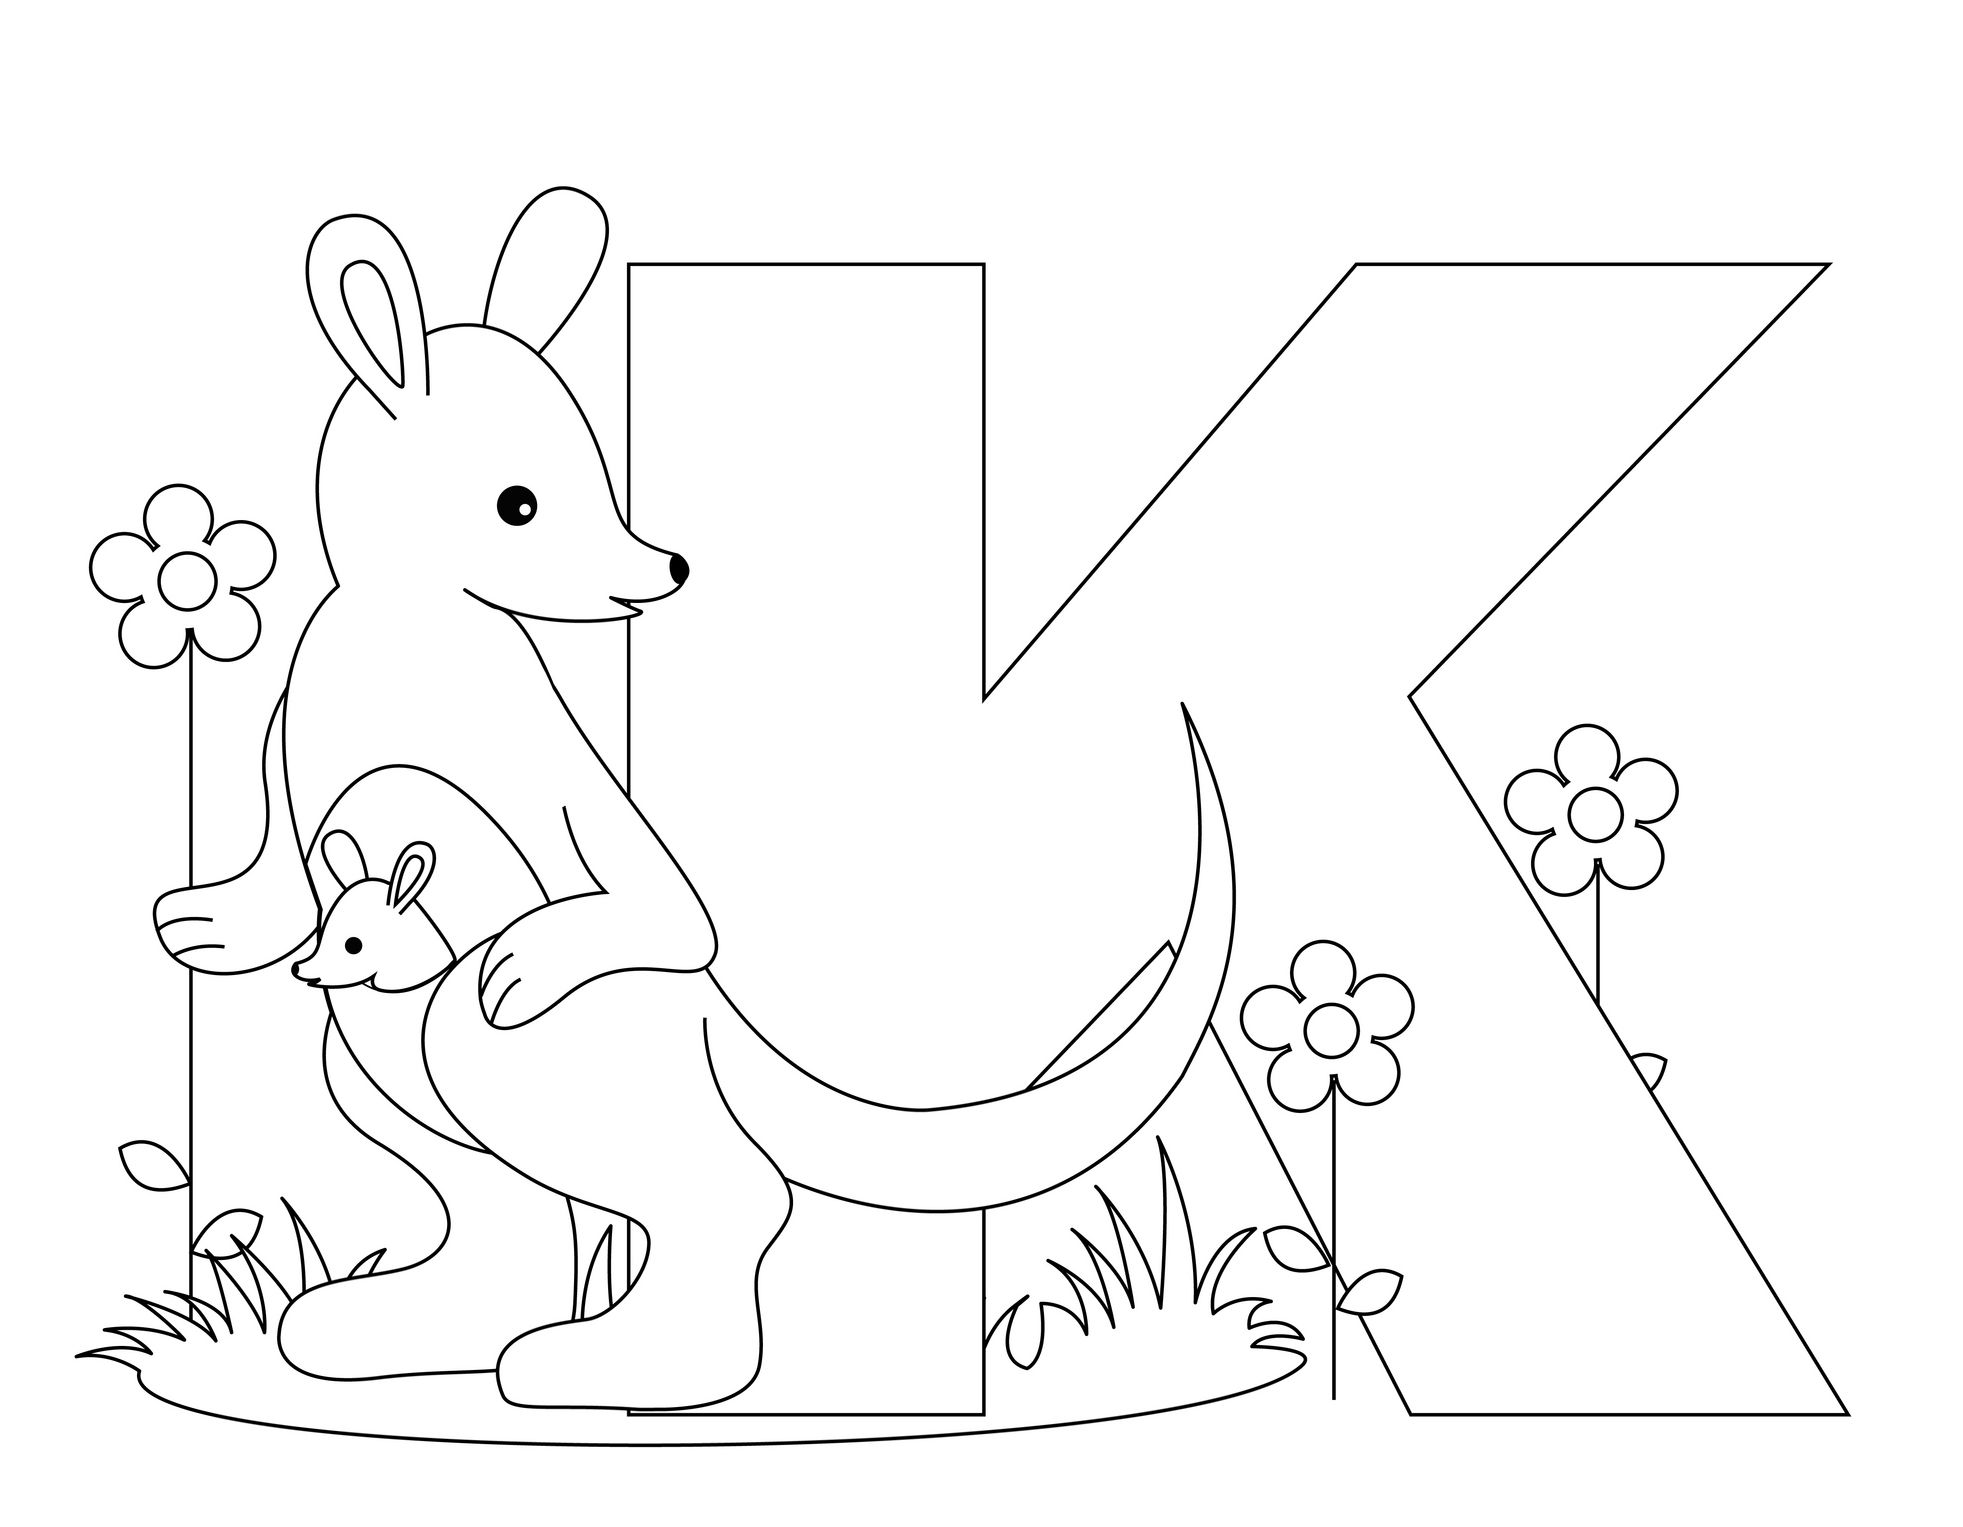 Free kindergarten alphabet worksheets animal alphabet letter k coloring worksheet from kiboomu worksheets